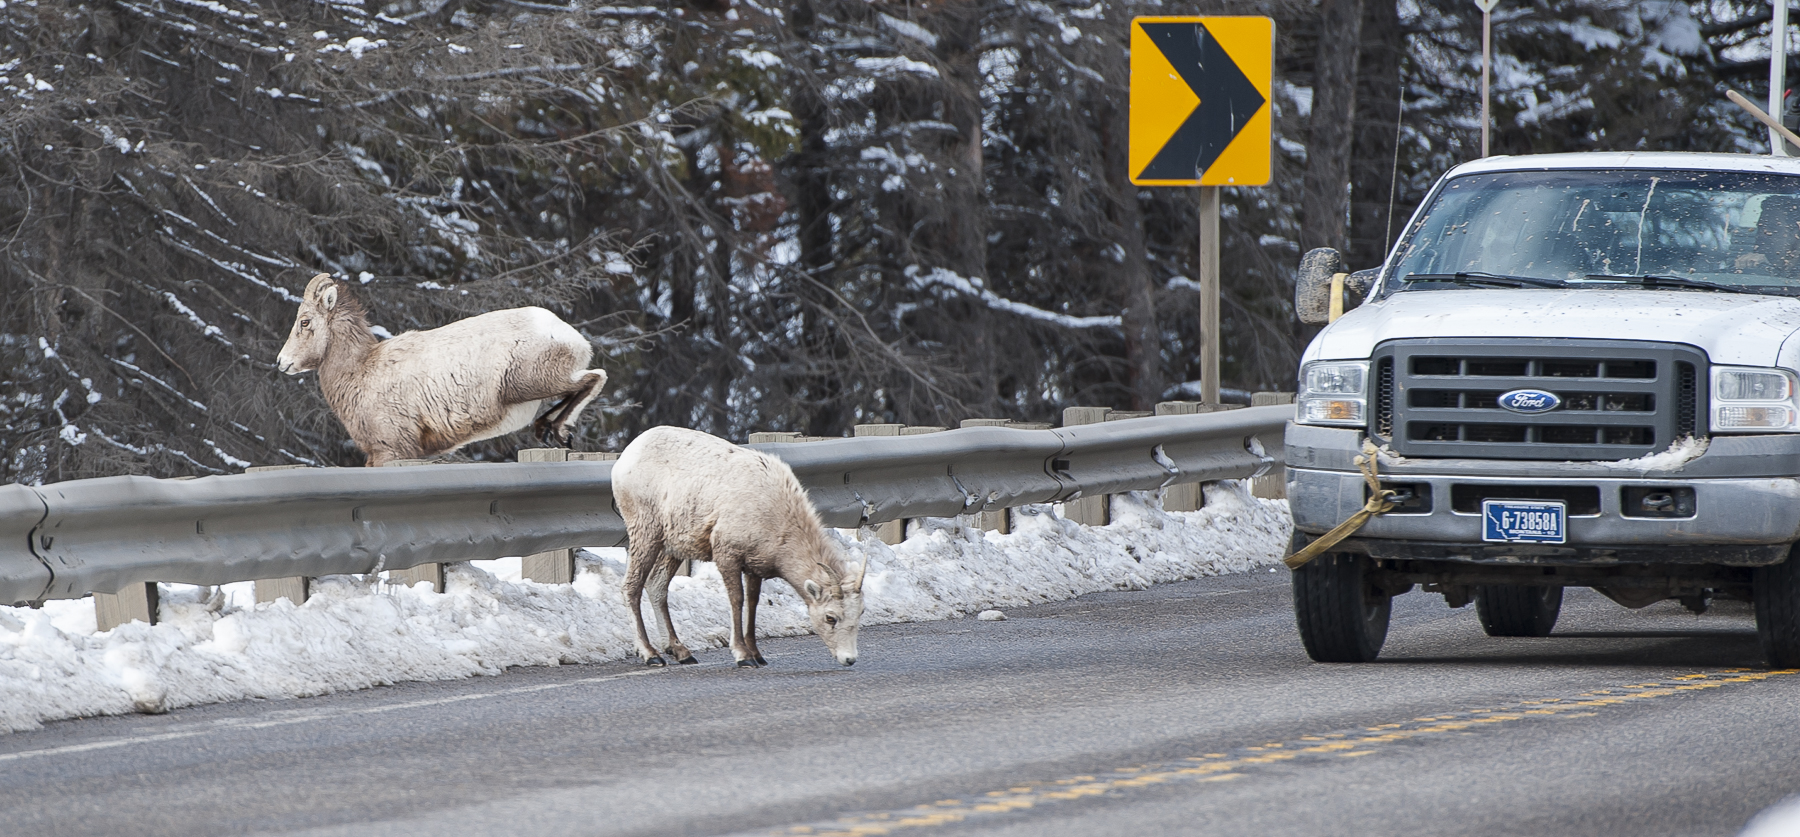 Vehicle approaches two Big Horn sheep on Hwy 191. One is licking salt from the road surface, the other is jumping over a guardrail away from the road. There is a road curve warning sign in the backgorund.